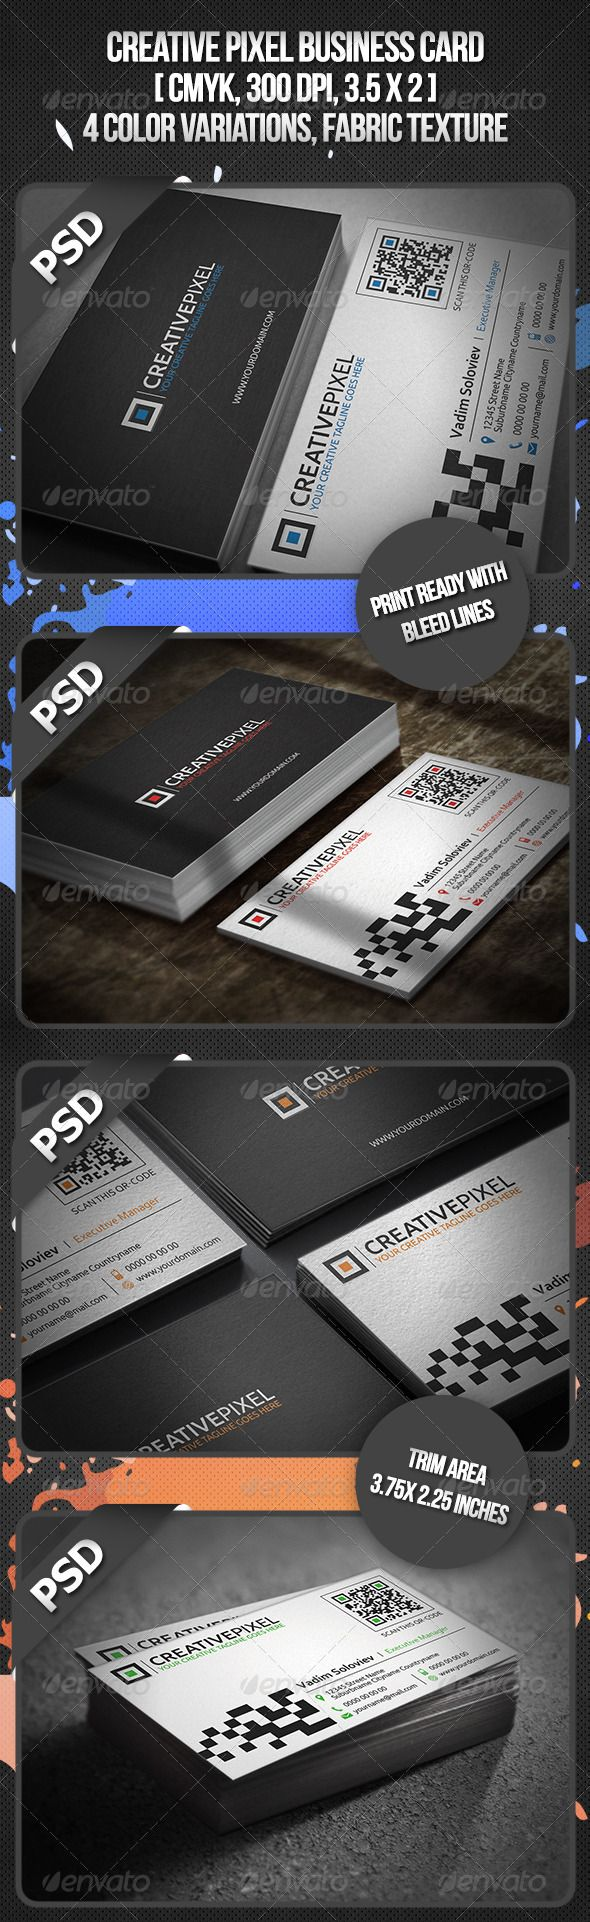 42 best QR code business card images on Pinterest | Business card ...